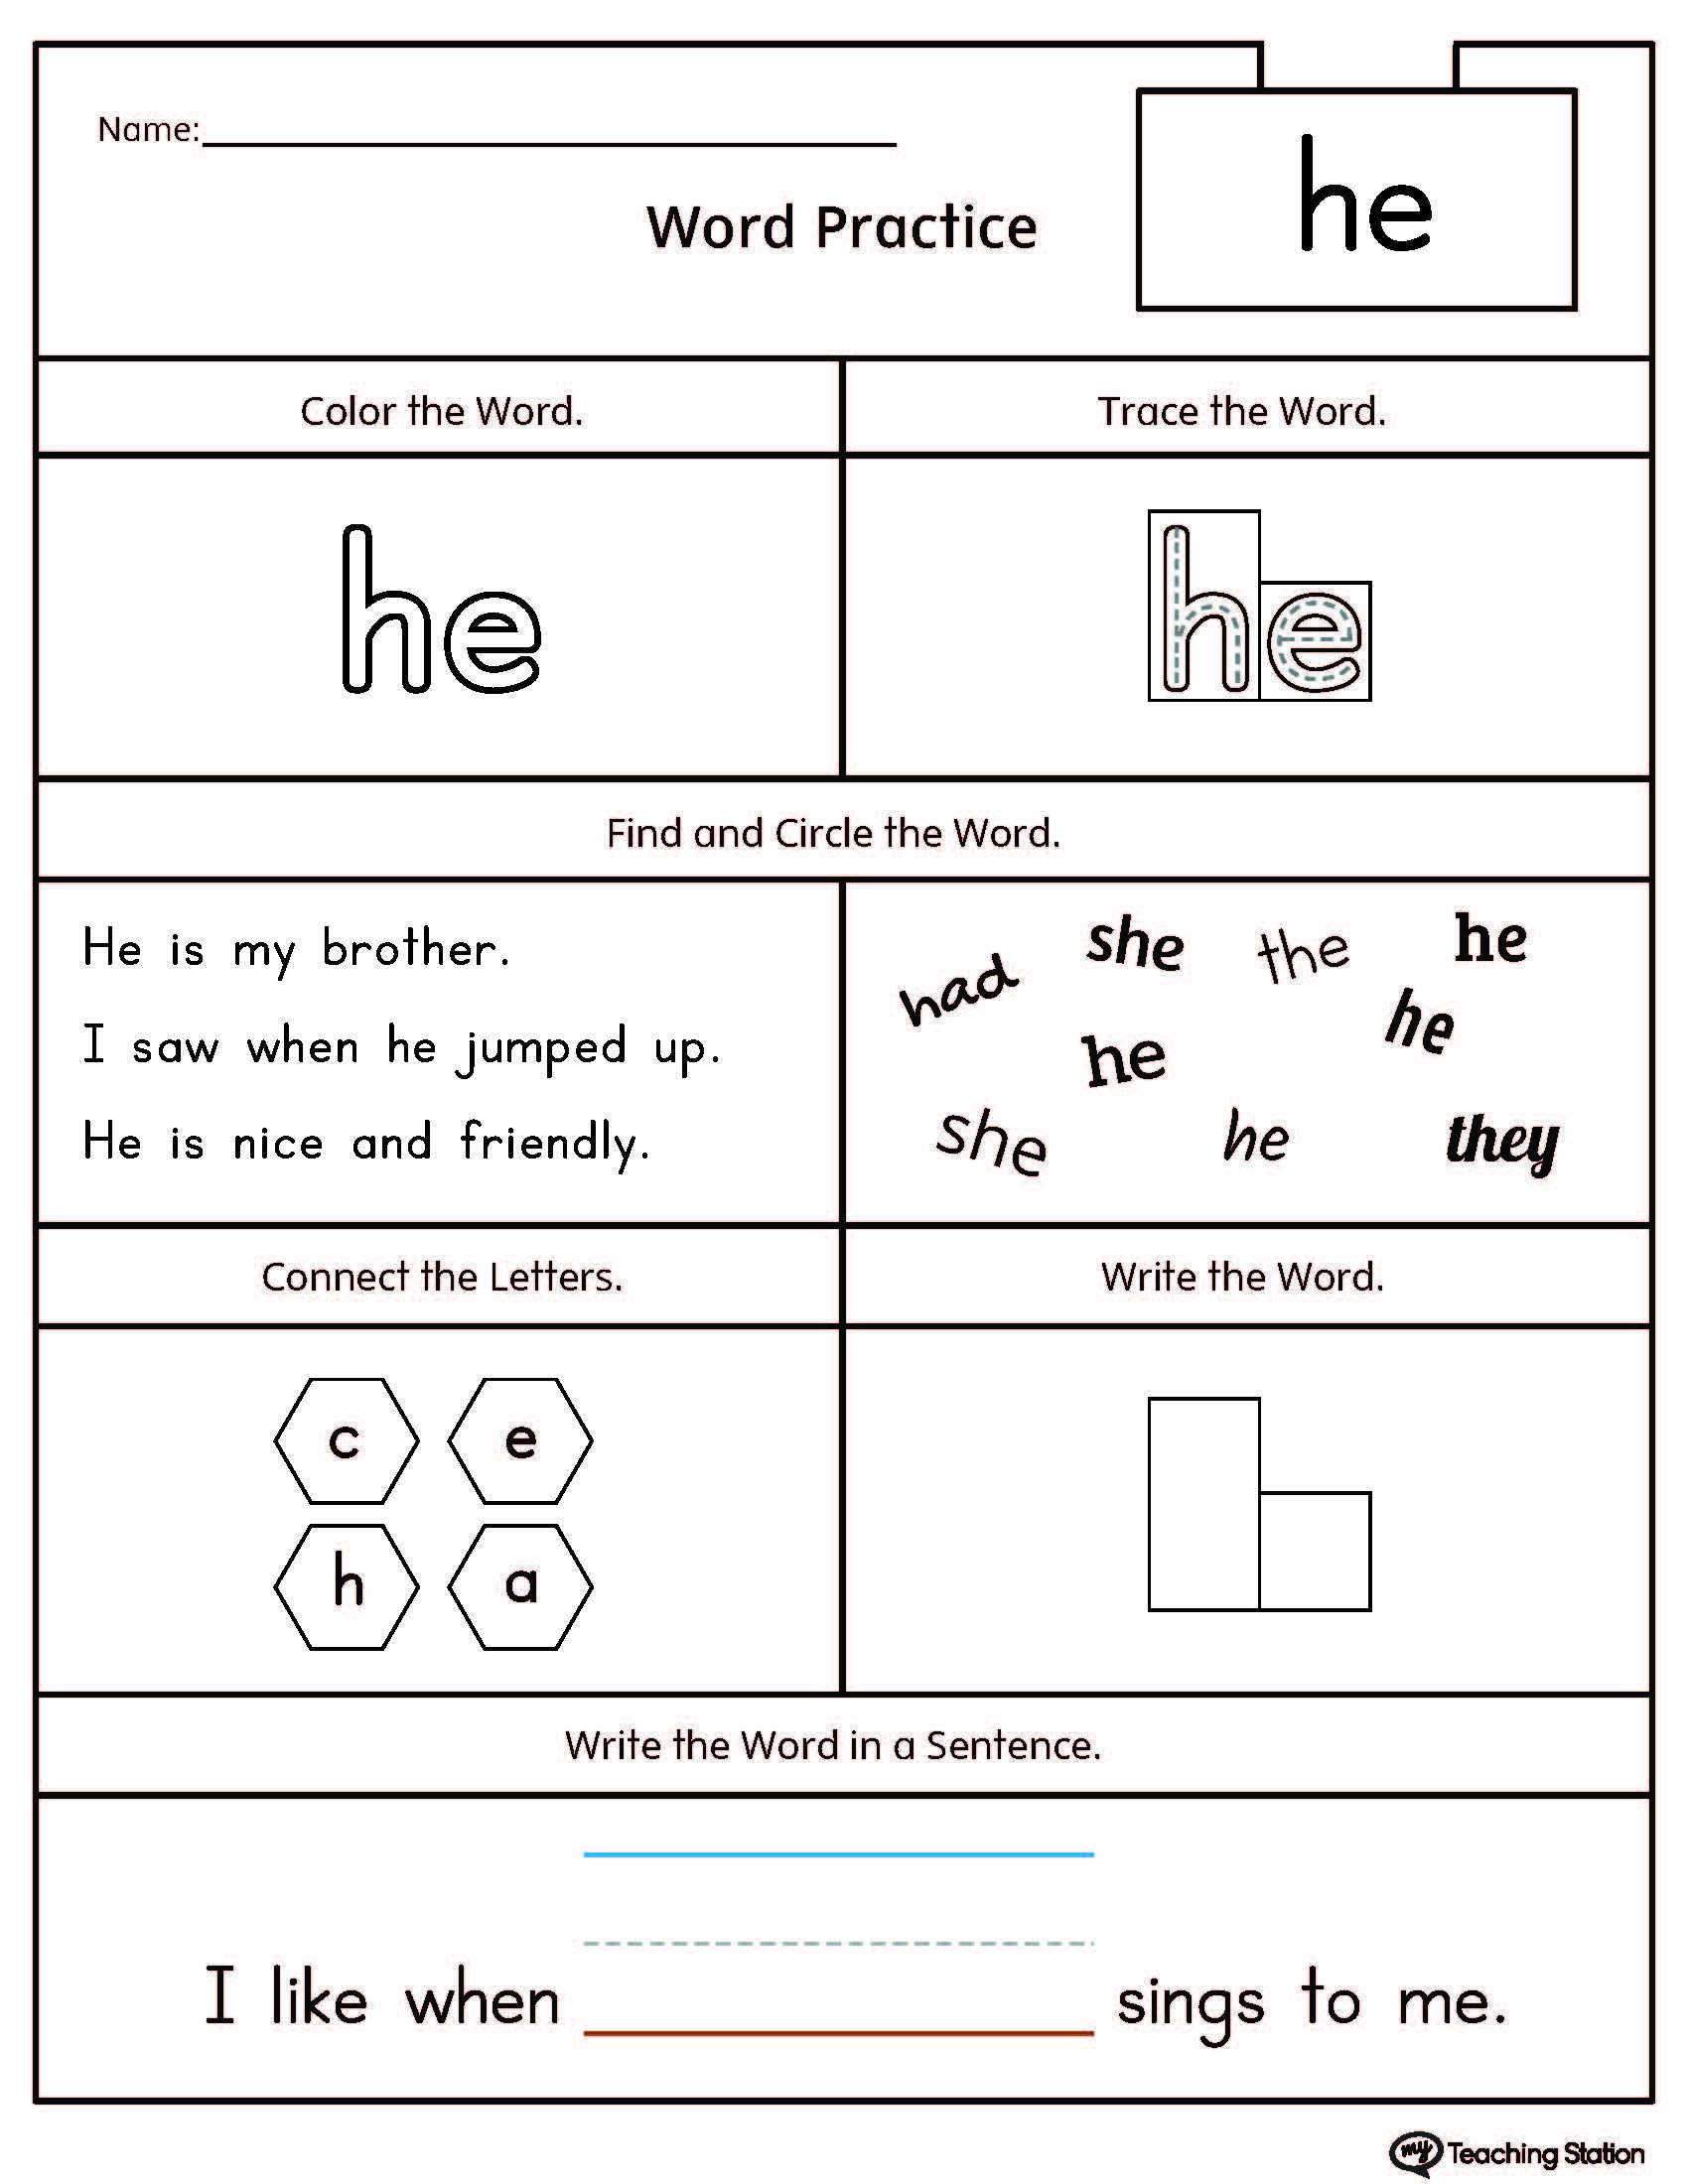 Worksheets Sight Words Worksheets Free high frequency words printable worksheets myteachingstation com word he worksheet